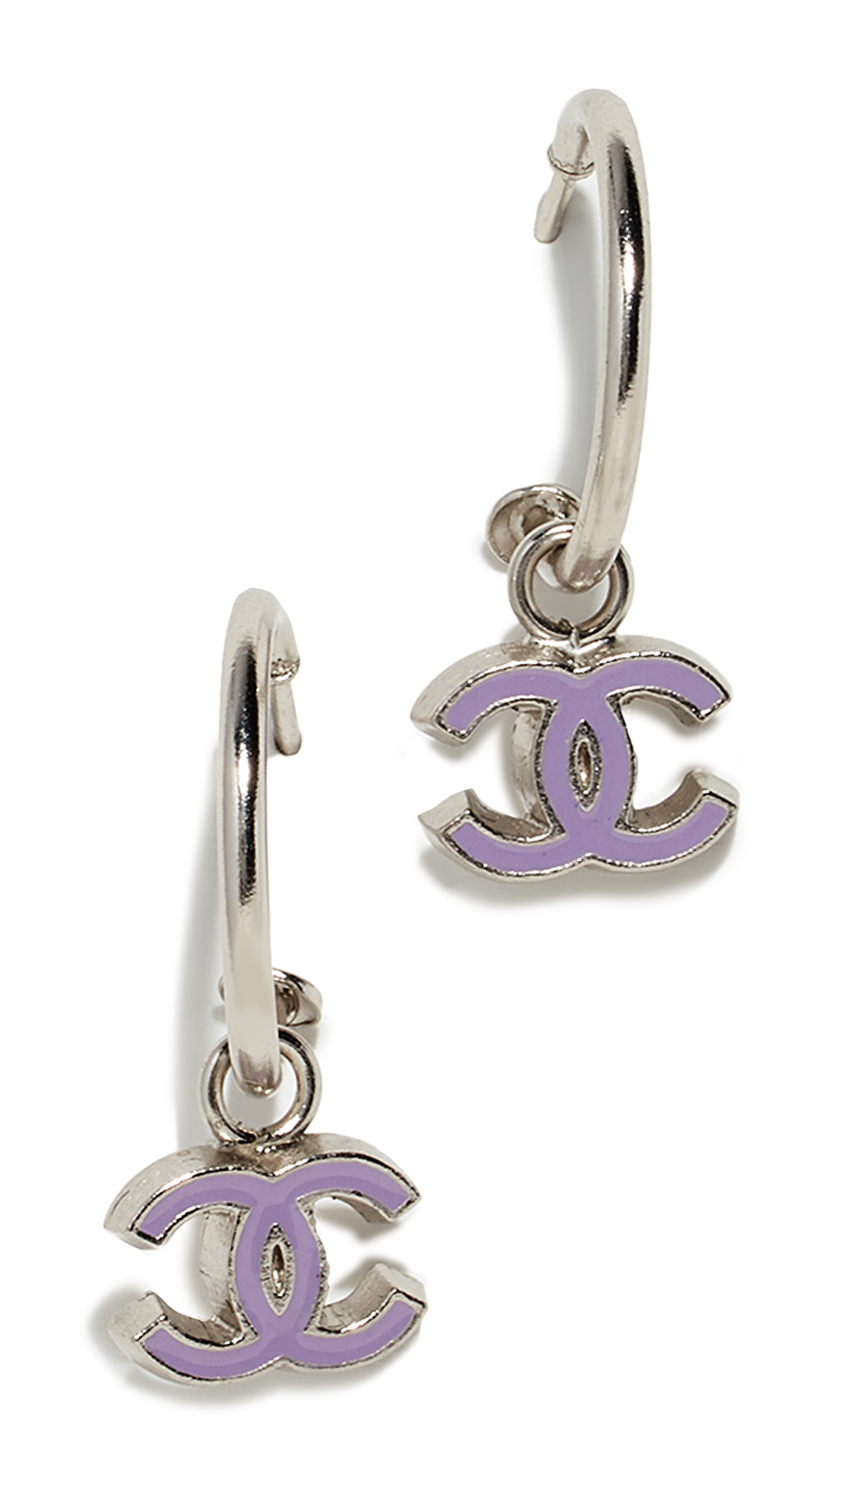 WHAT GOES AROUND COMES AROUND Chanel Enamel Cc Earrings in Silver